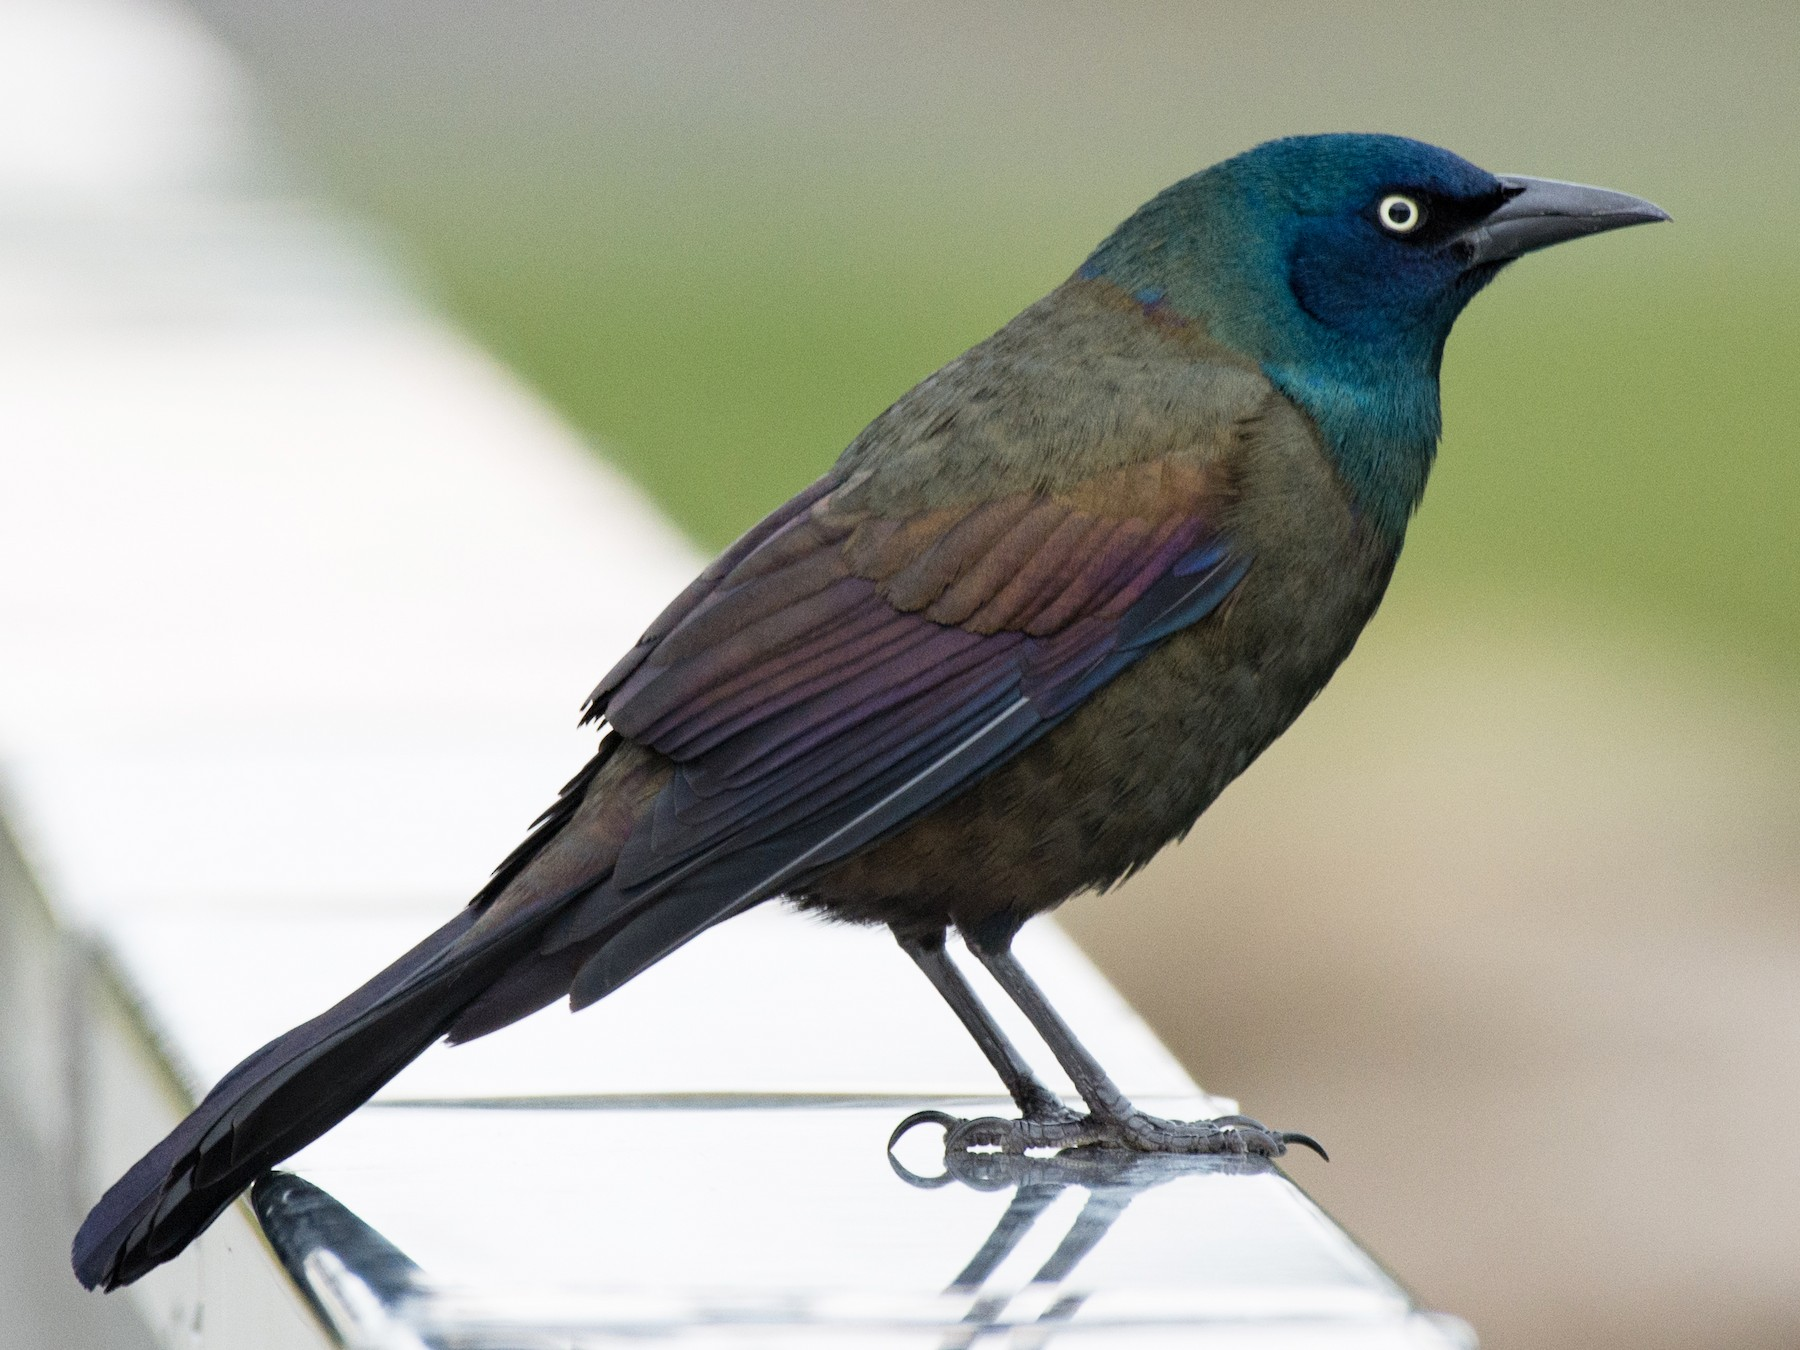 Common Grackle - T I